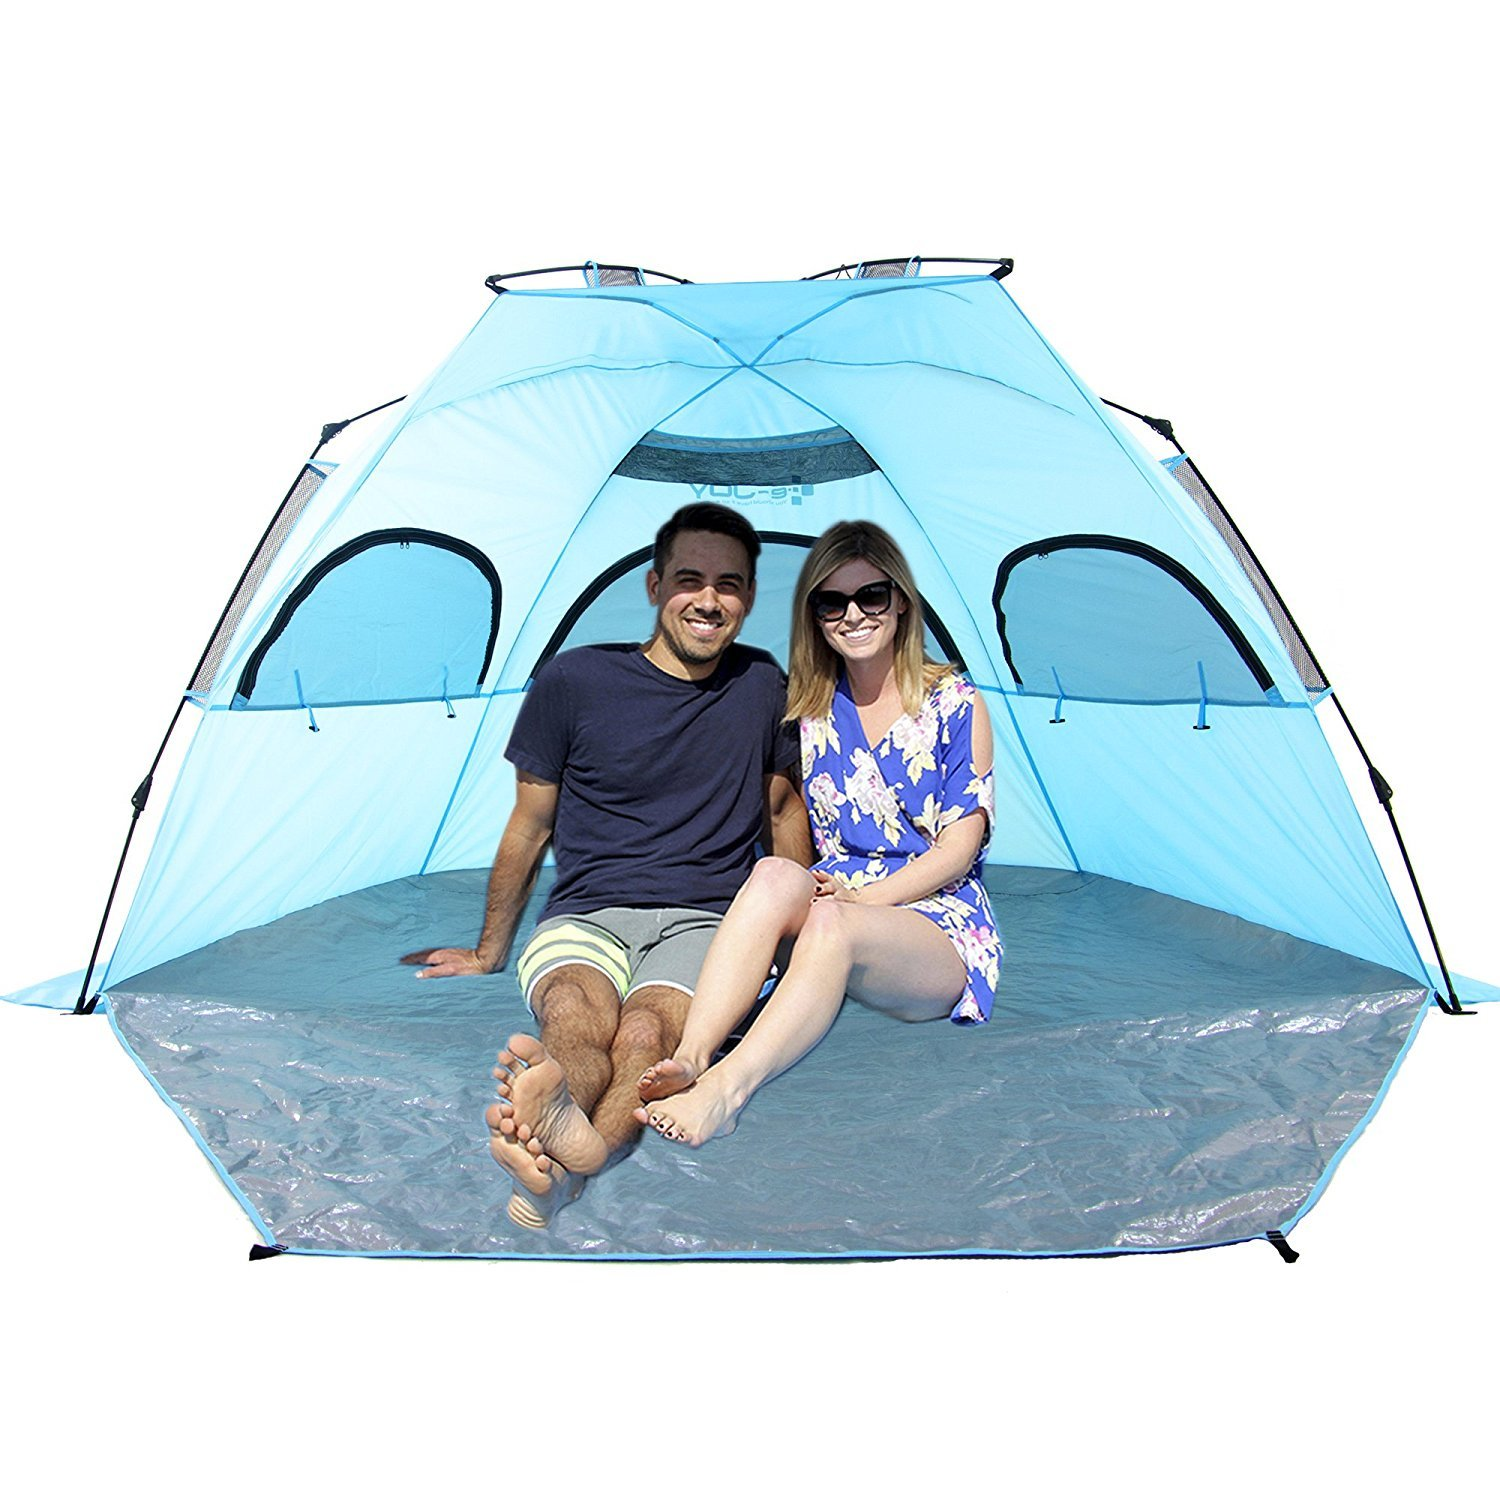 e-joy Outdoor Deluxe Beach Tent,Automatic Pop Up Instant Portable Outdoors Beach Tent, UV Protection Sun Shelter,Easy Set up